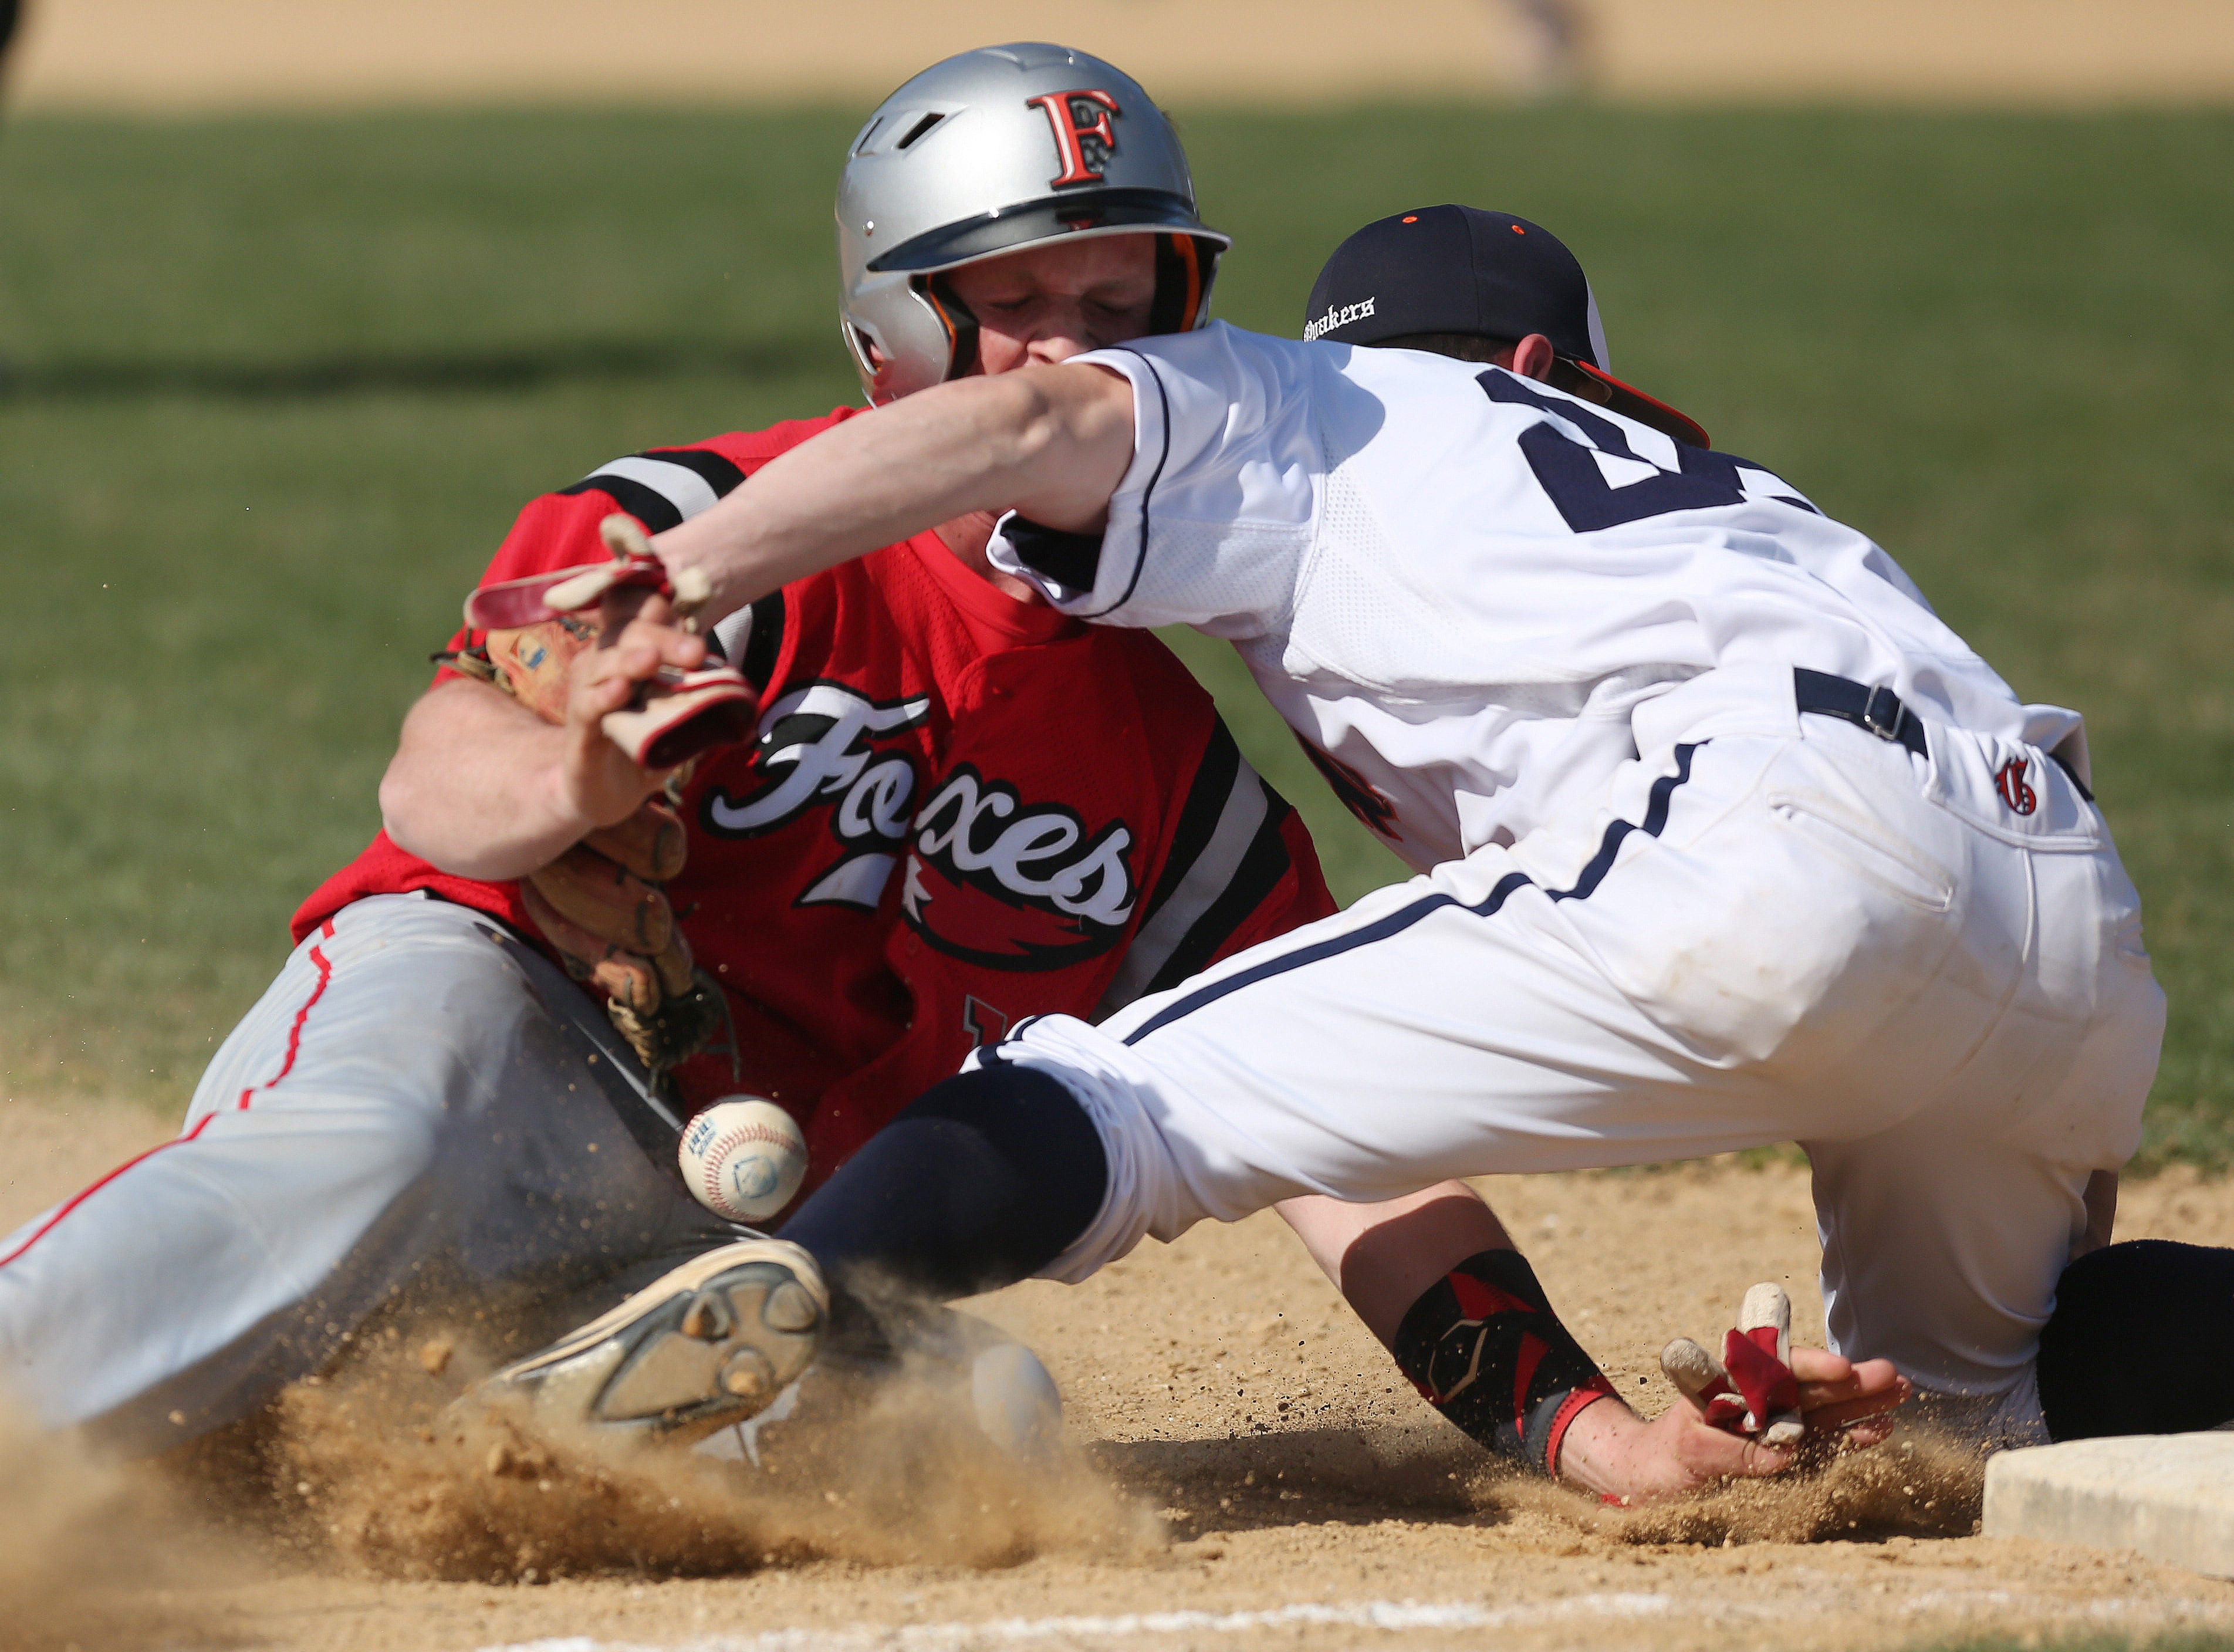 Fox Lane's Thomas O'Sullivan (19) slides safe into third as ball gets away from Greely third baseman Jacob Small (26) during baseball action at Horace Greely High School in Chappaqua May 1, 2018. Fox Lane won the game 9-8.